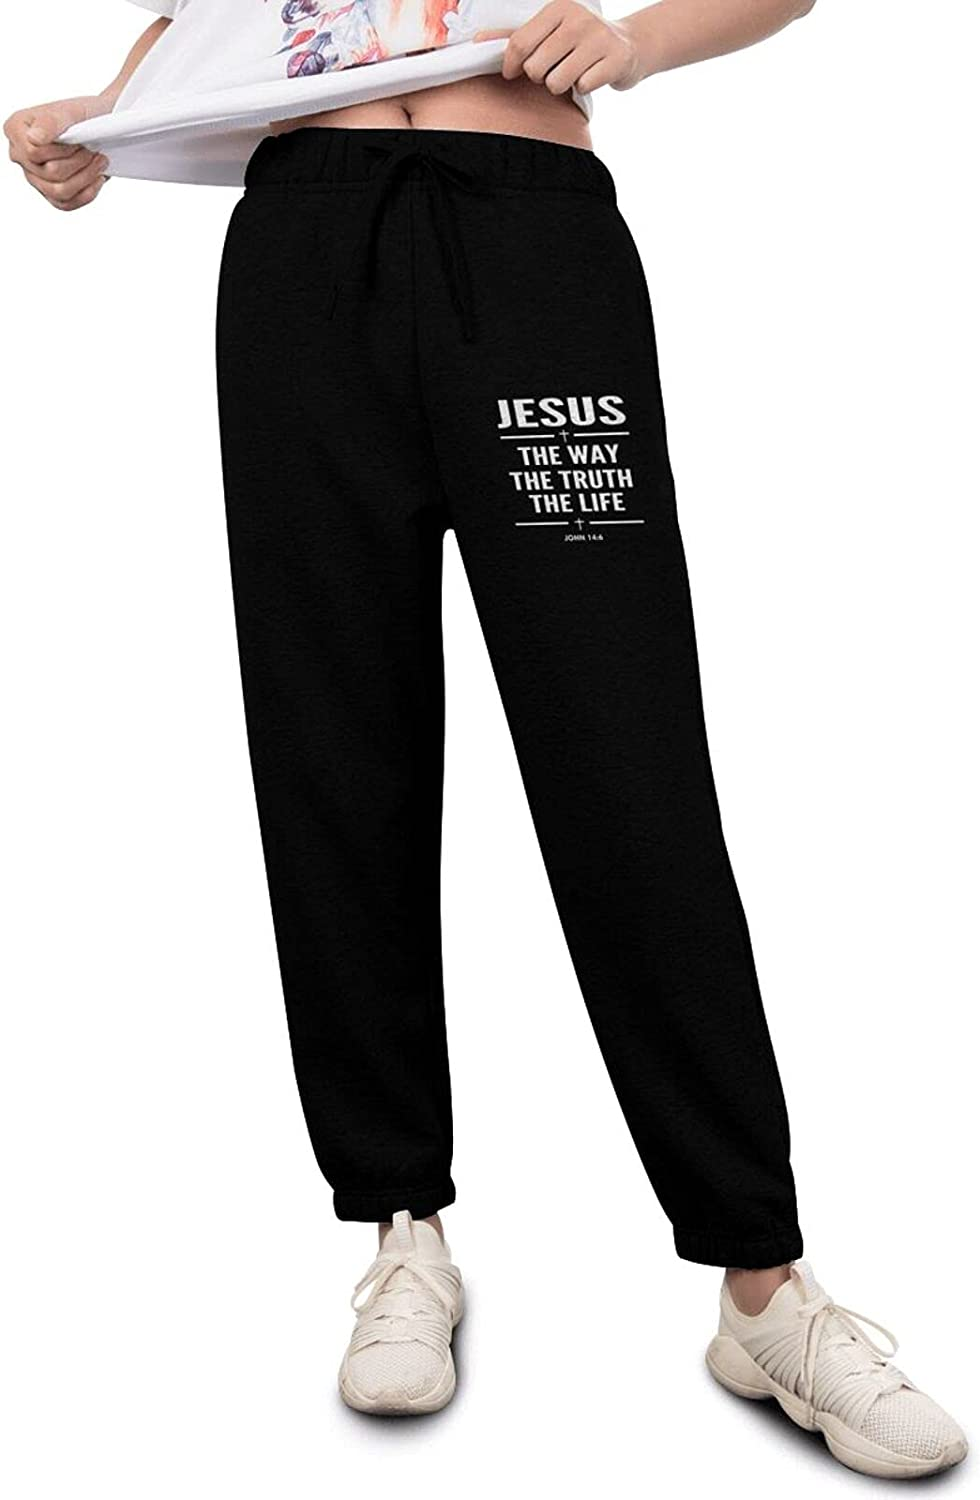 Jesus The Way NEW Truth Life John J Pants 14 6 Womens' Track Deluxe